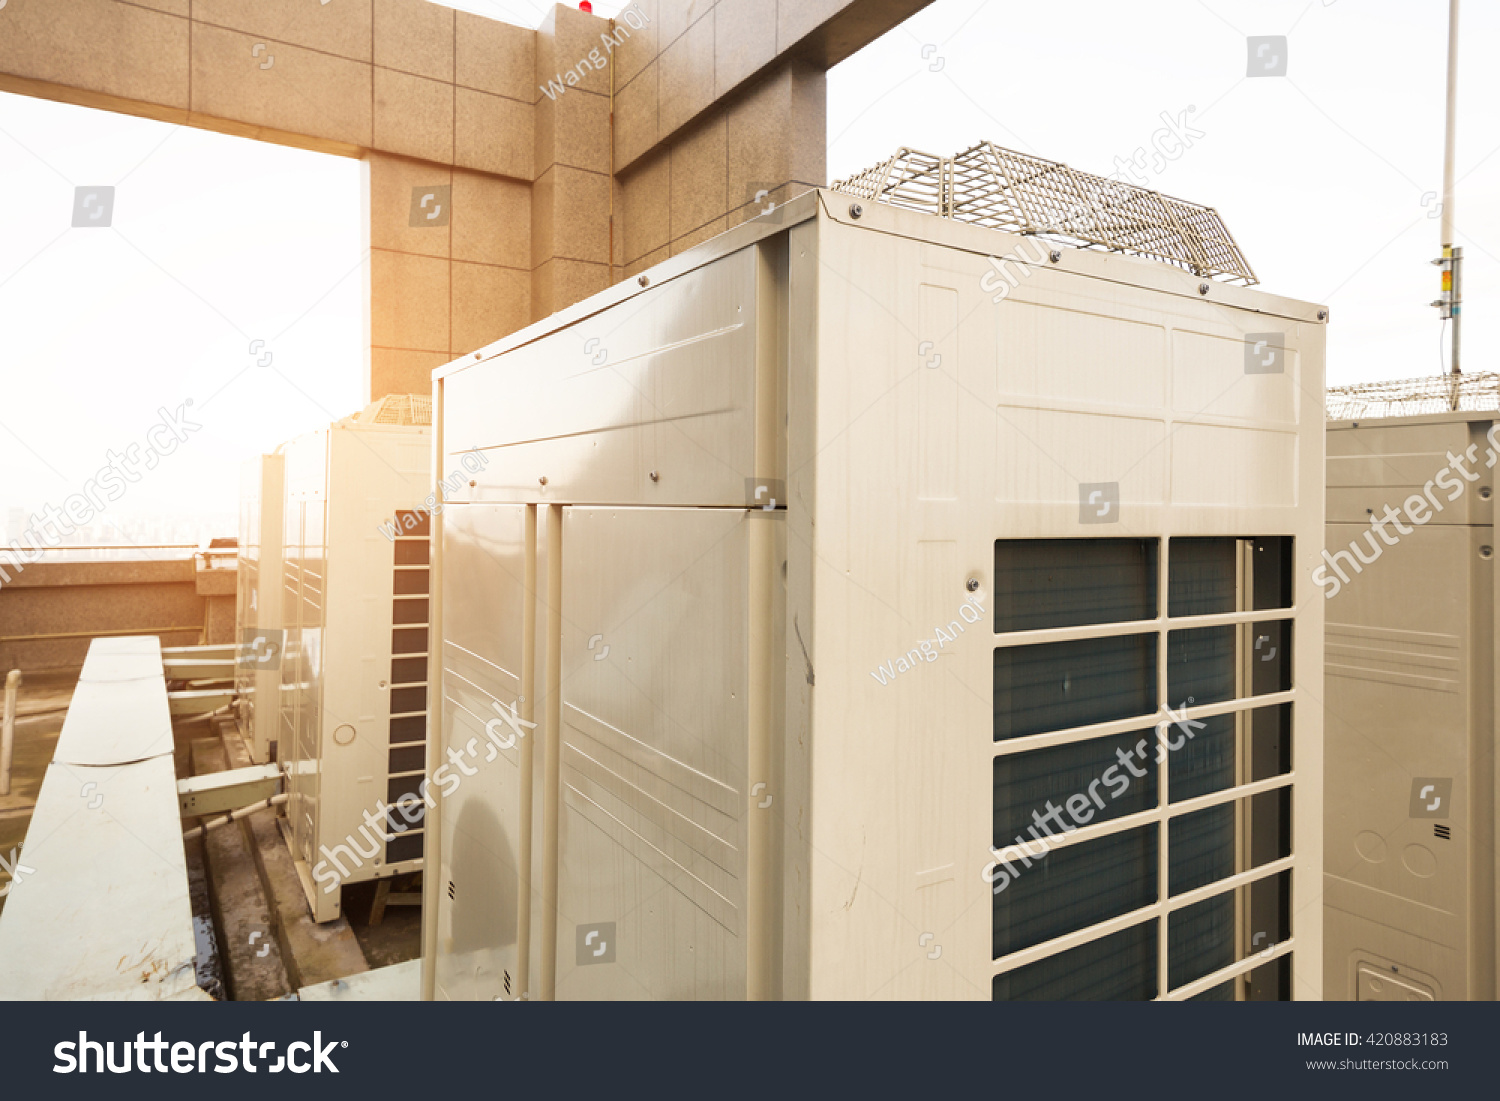 Air conditioning system assembled on top of a building. #91643A